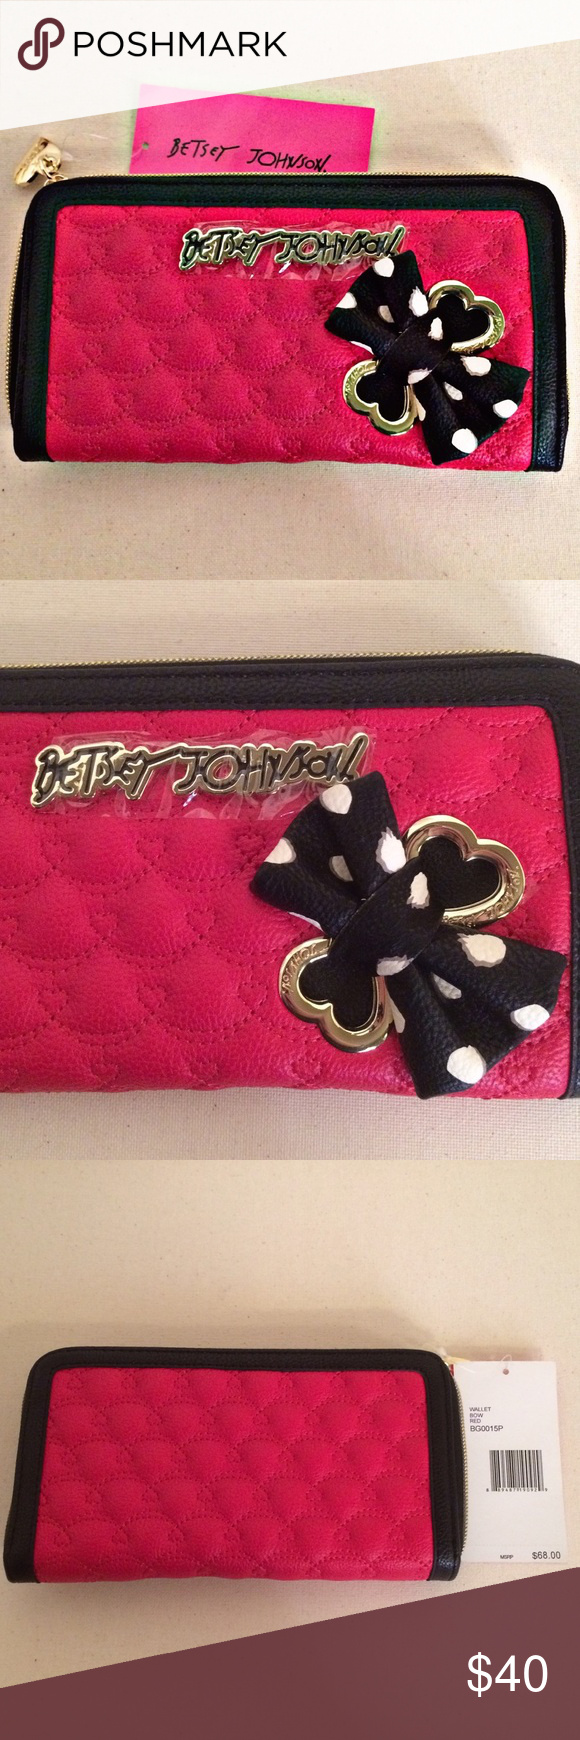 """NWT Betsey Johnson red & black stitch work wallet NWT Betsey Johnson wallet. Black with red stitch work hearts. Super cute black & white polka dot bow on the front with gold heart accents. Betsey's signature writing on the inside. Measurements: 8"""" x 4 1/2"""". Perfect condition, no flaws! Offers warmly welcomed Betsey Johnson Bags Wallets"""